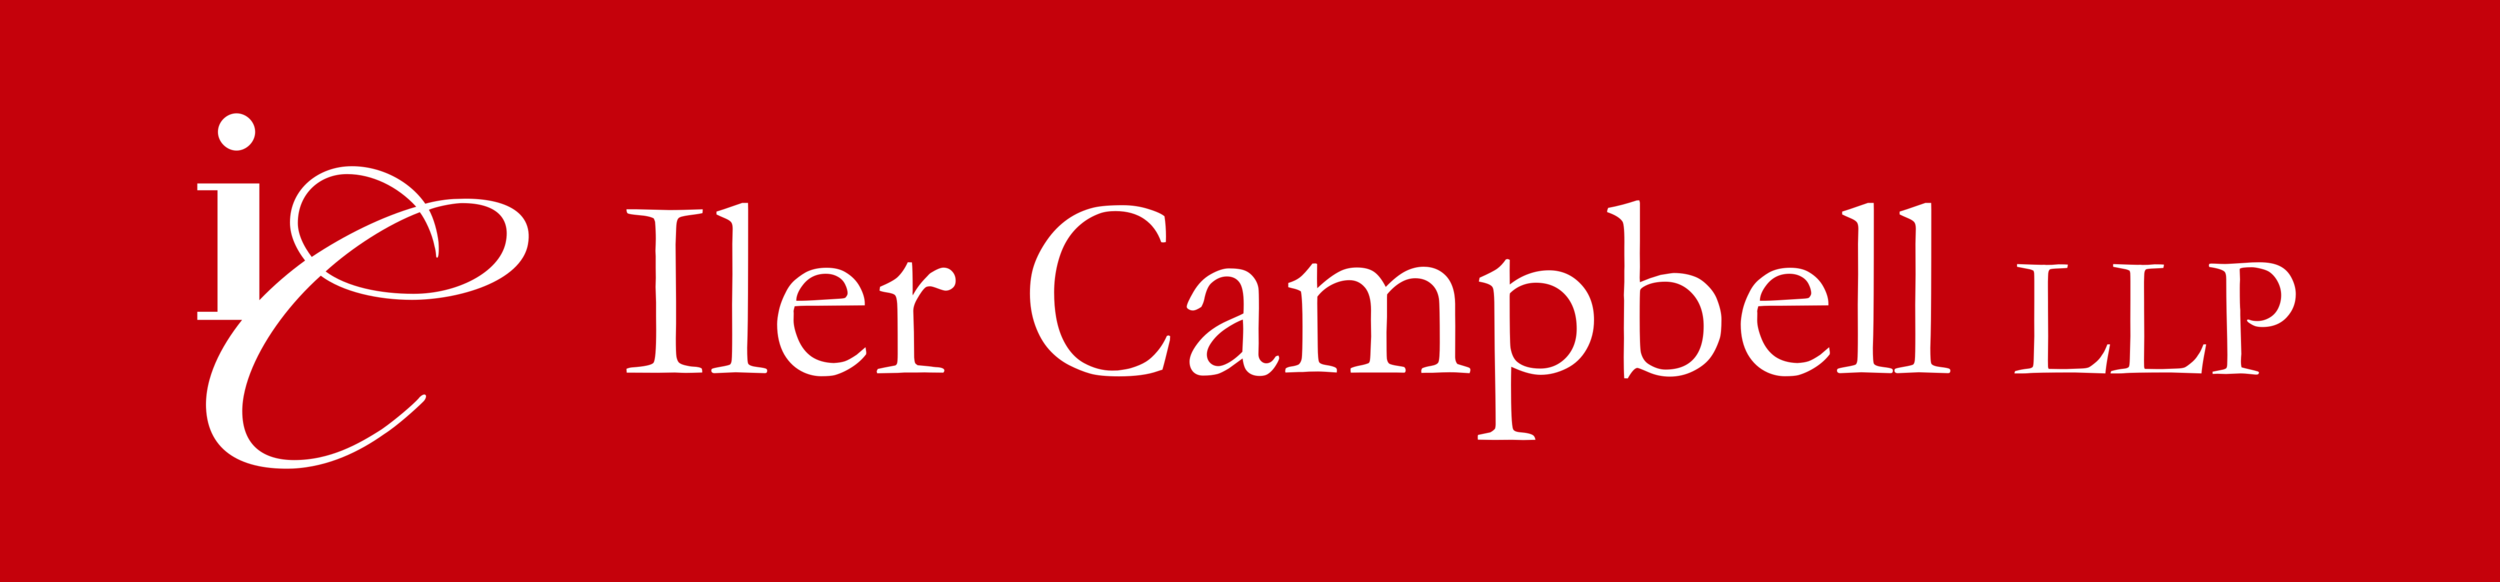 Iler Campbell logo - white on red.png